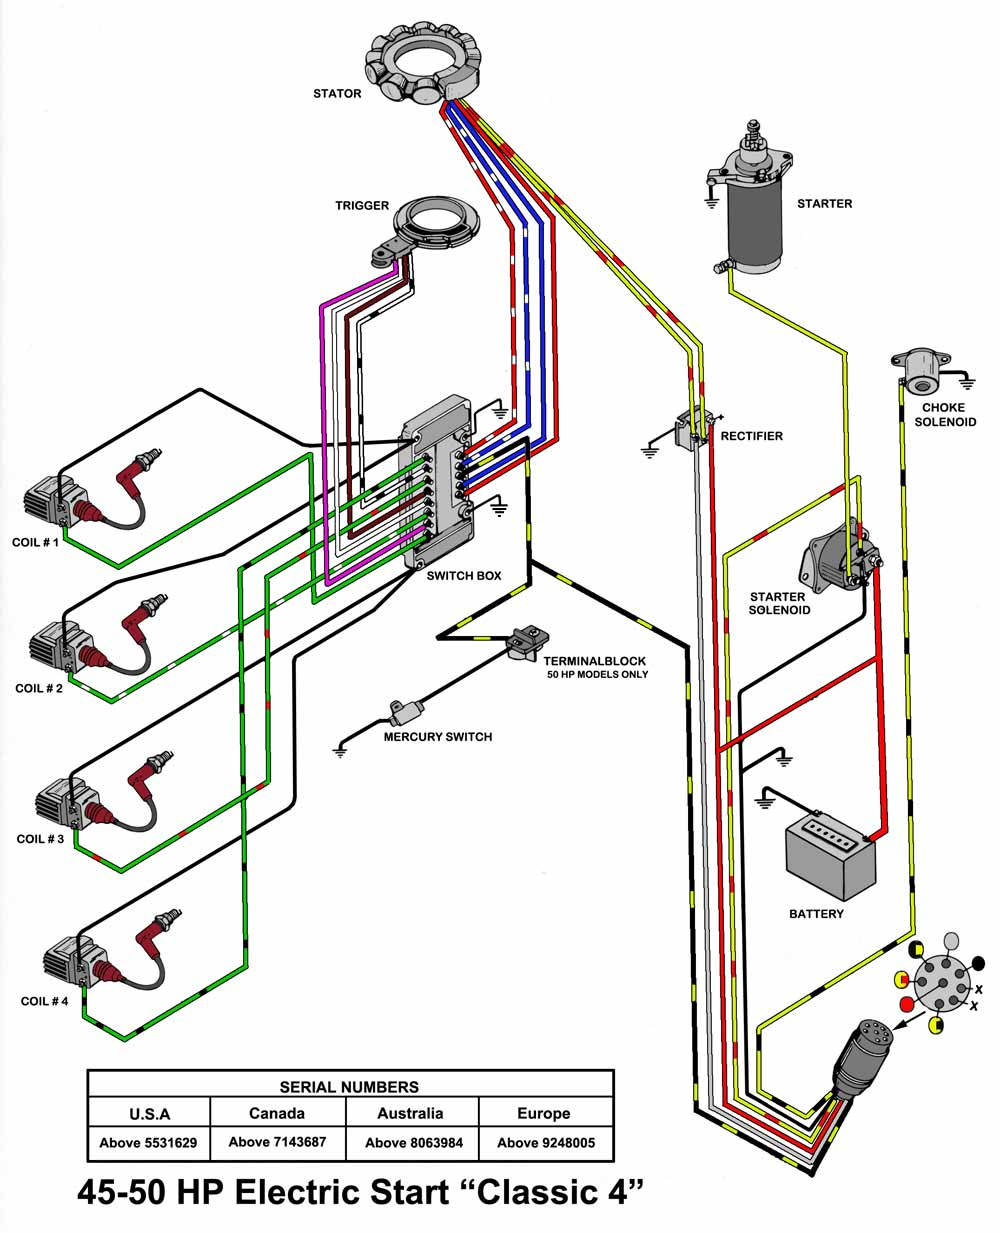 mercury wiring diagram 8 yvvoxuue ssiew co u2022 rh 8 yvvoxuue ssiew co evinrude outboard motor wiring diagram mercury outboard motor wiring diagram